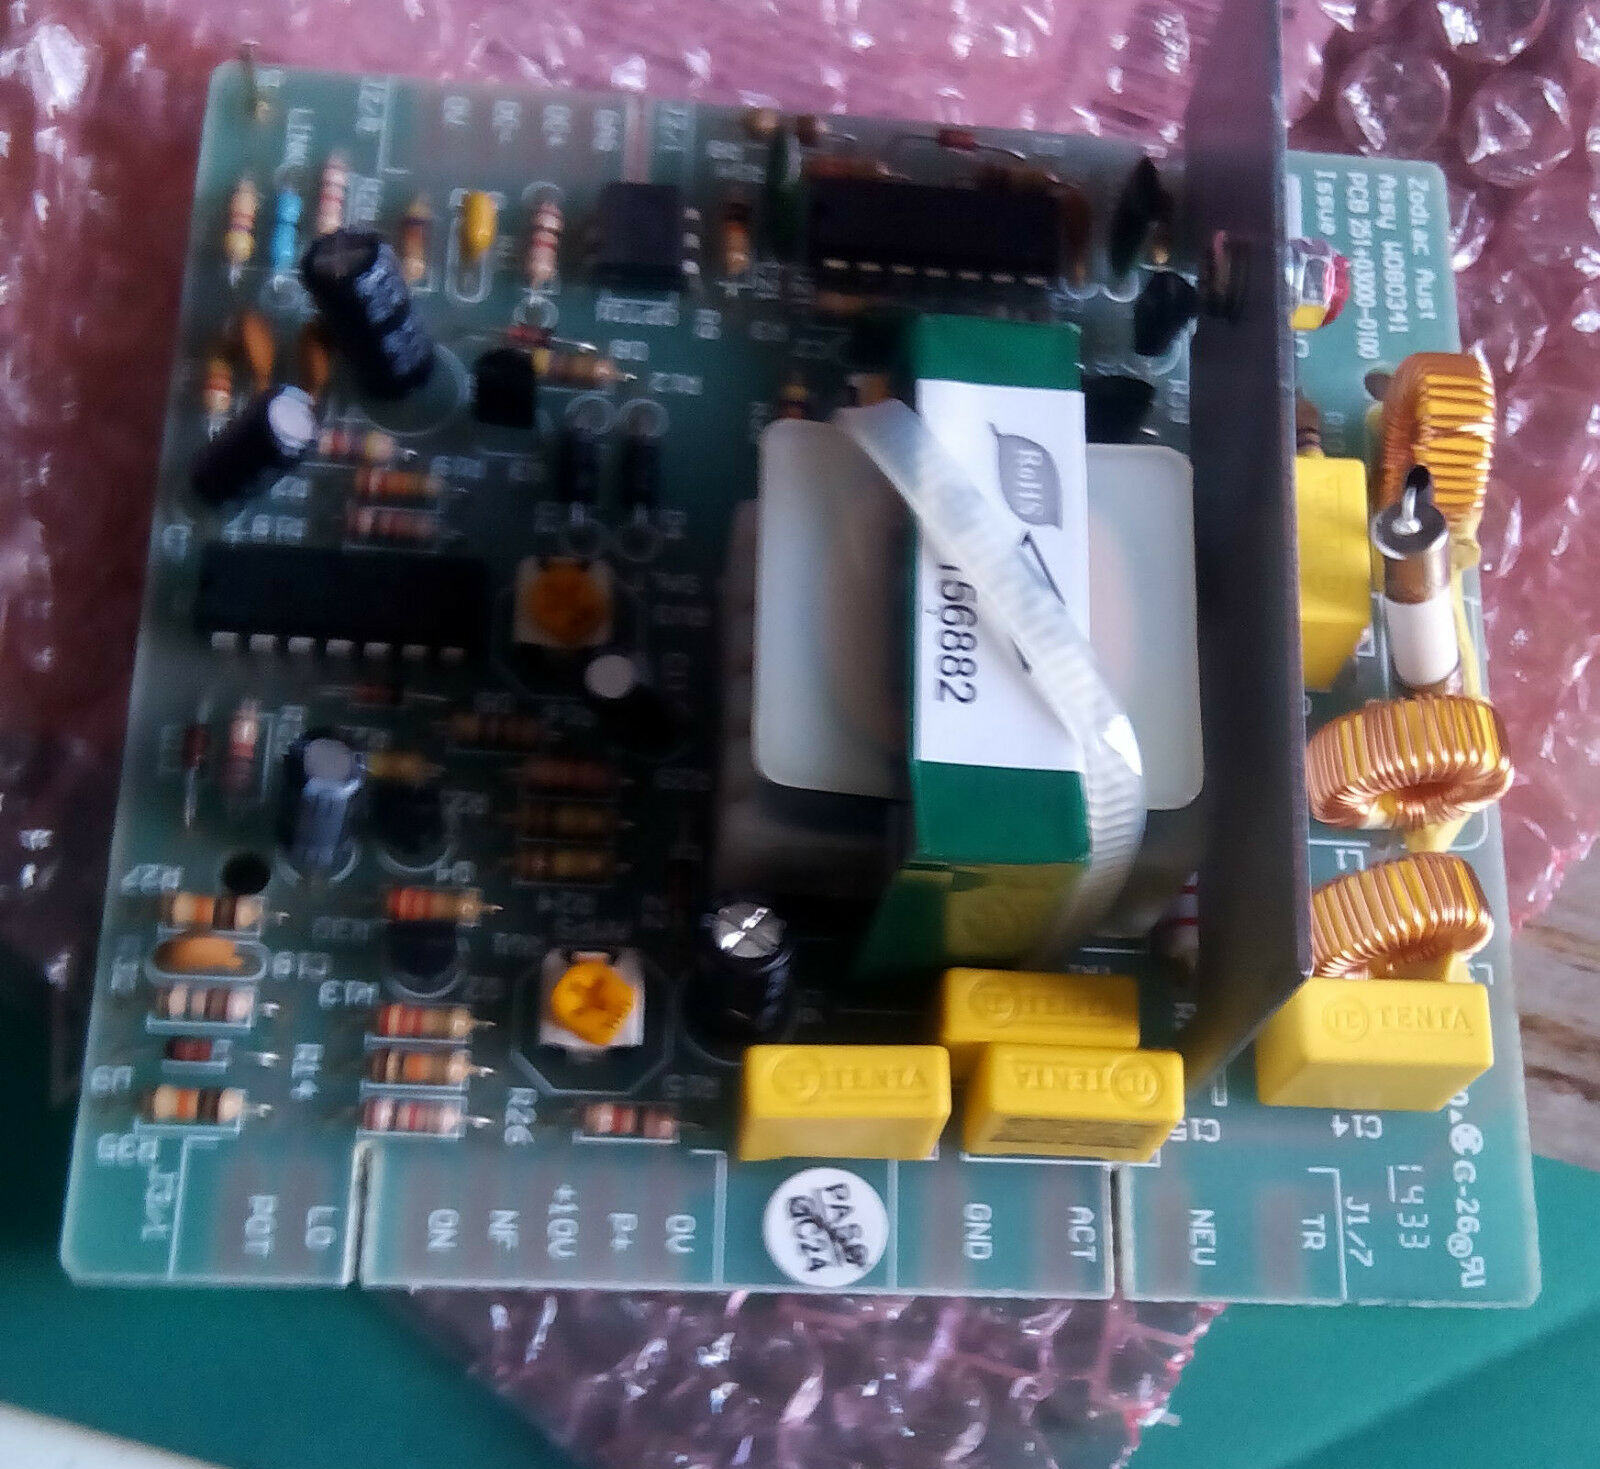 CLEARWATER C SERIES PCB fits all Größes + Hydromaster HAS FUSE, FRESH Zodiac,